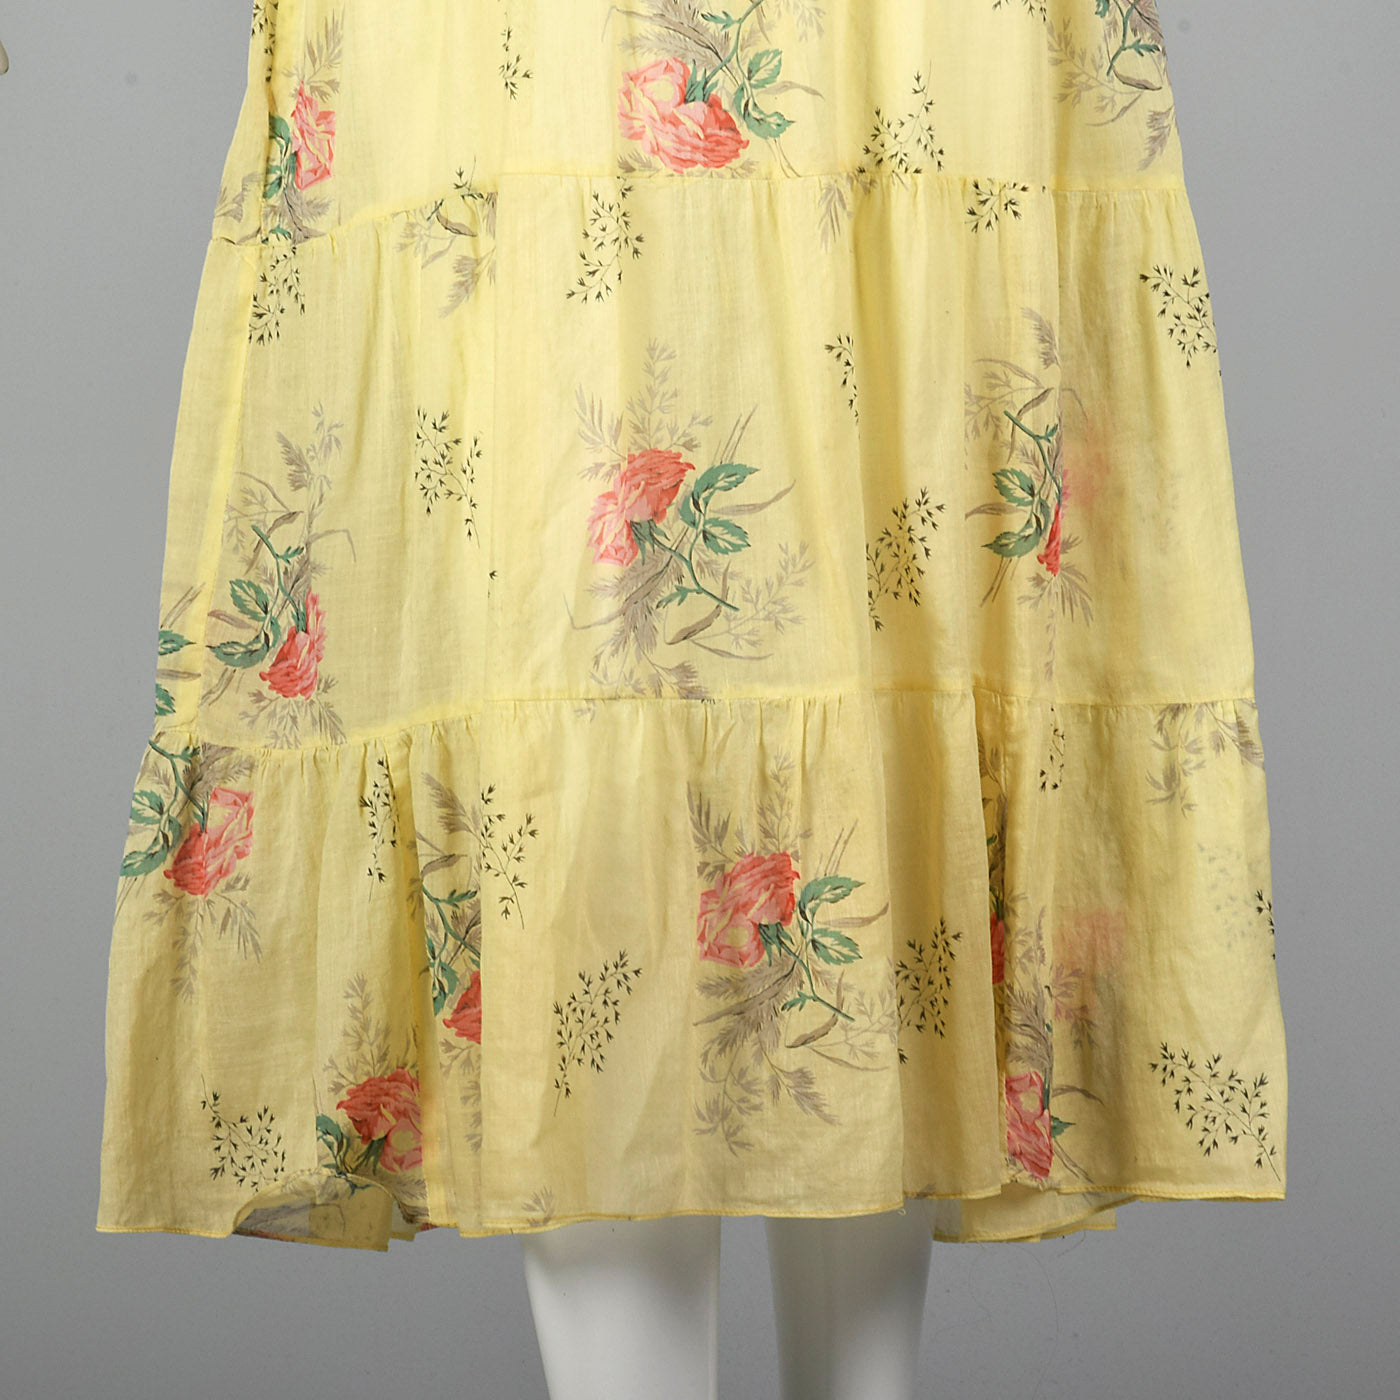 1930s Sheer Yellow Day Dress